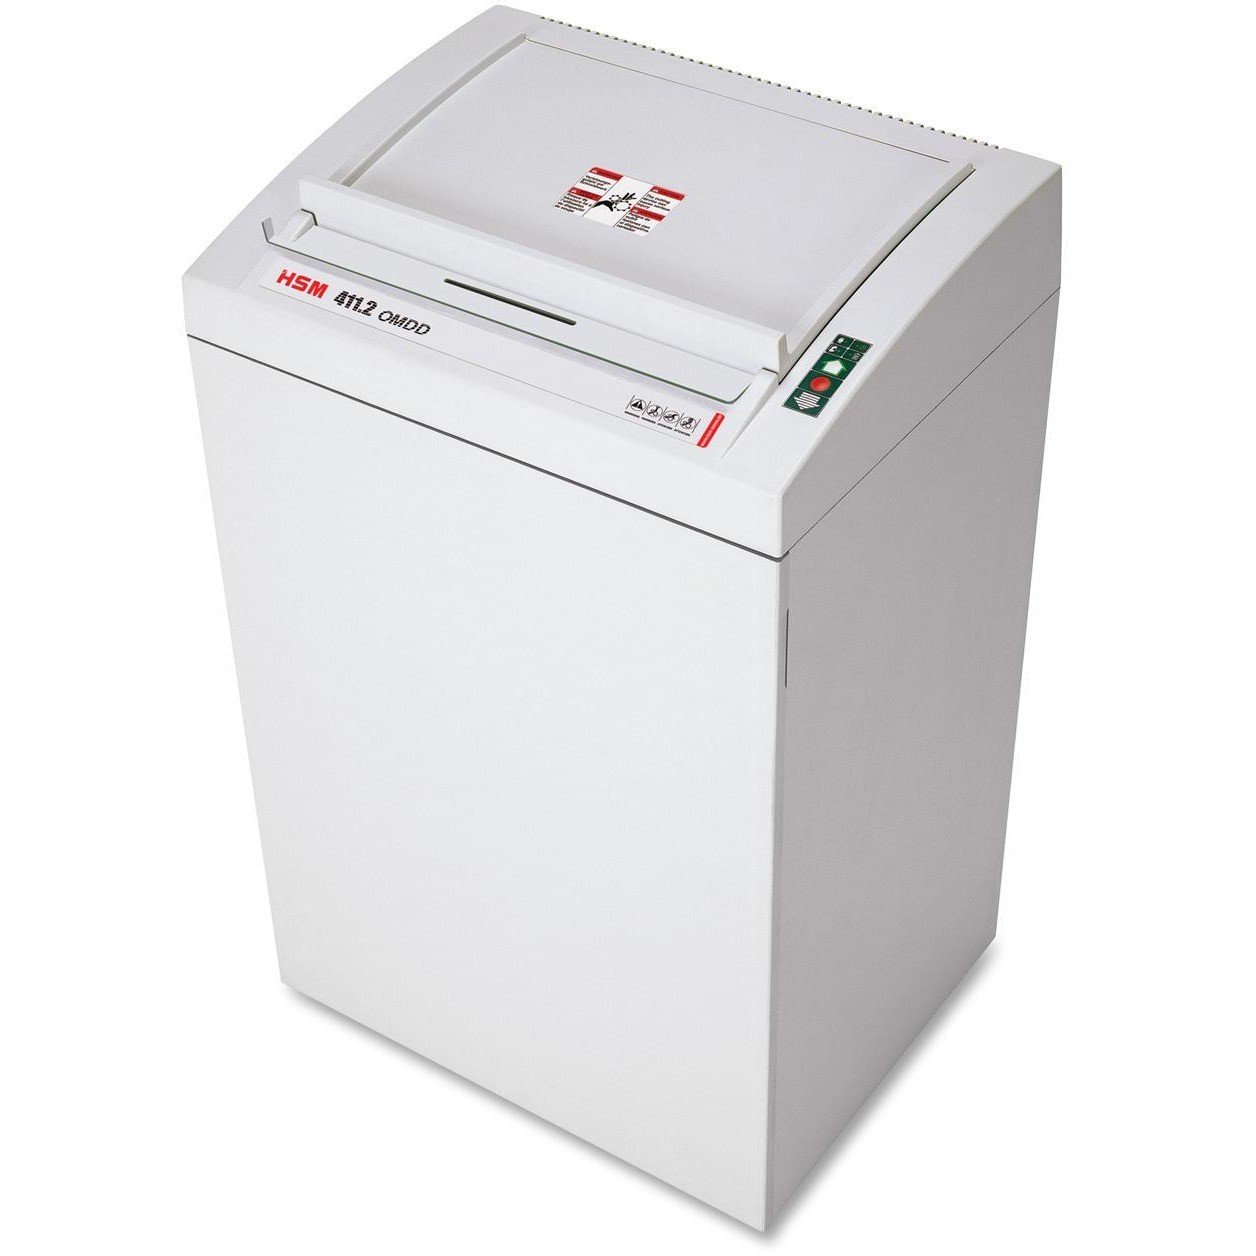 HSM Classic 411.2 HS L6 Optical Media Shredder - HSM1570